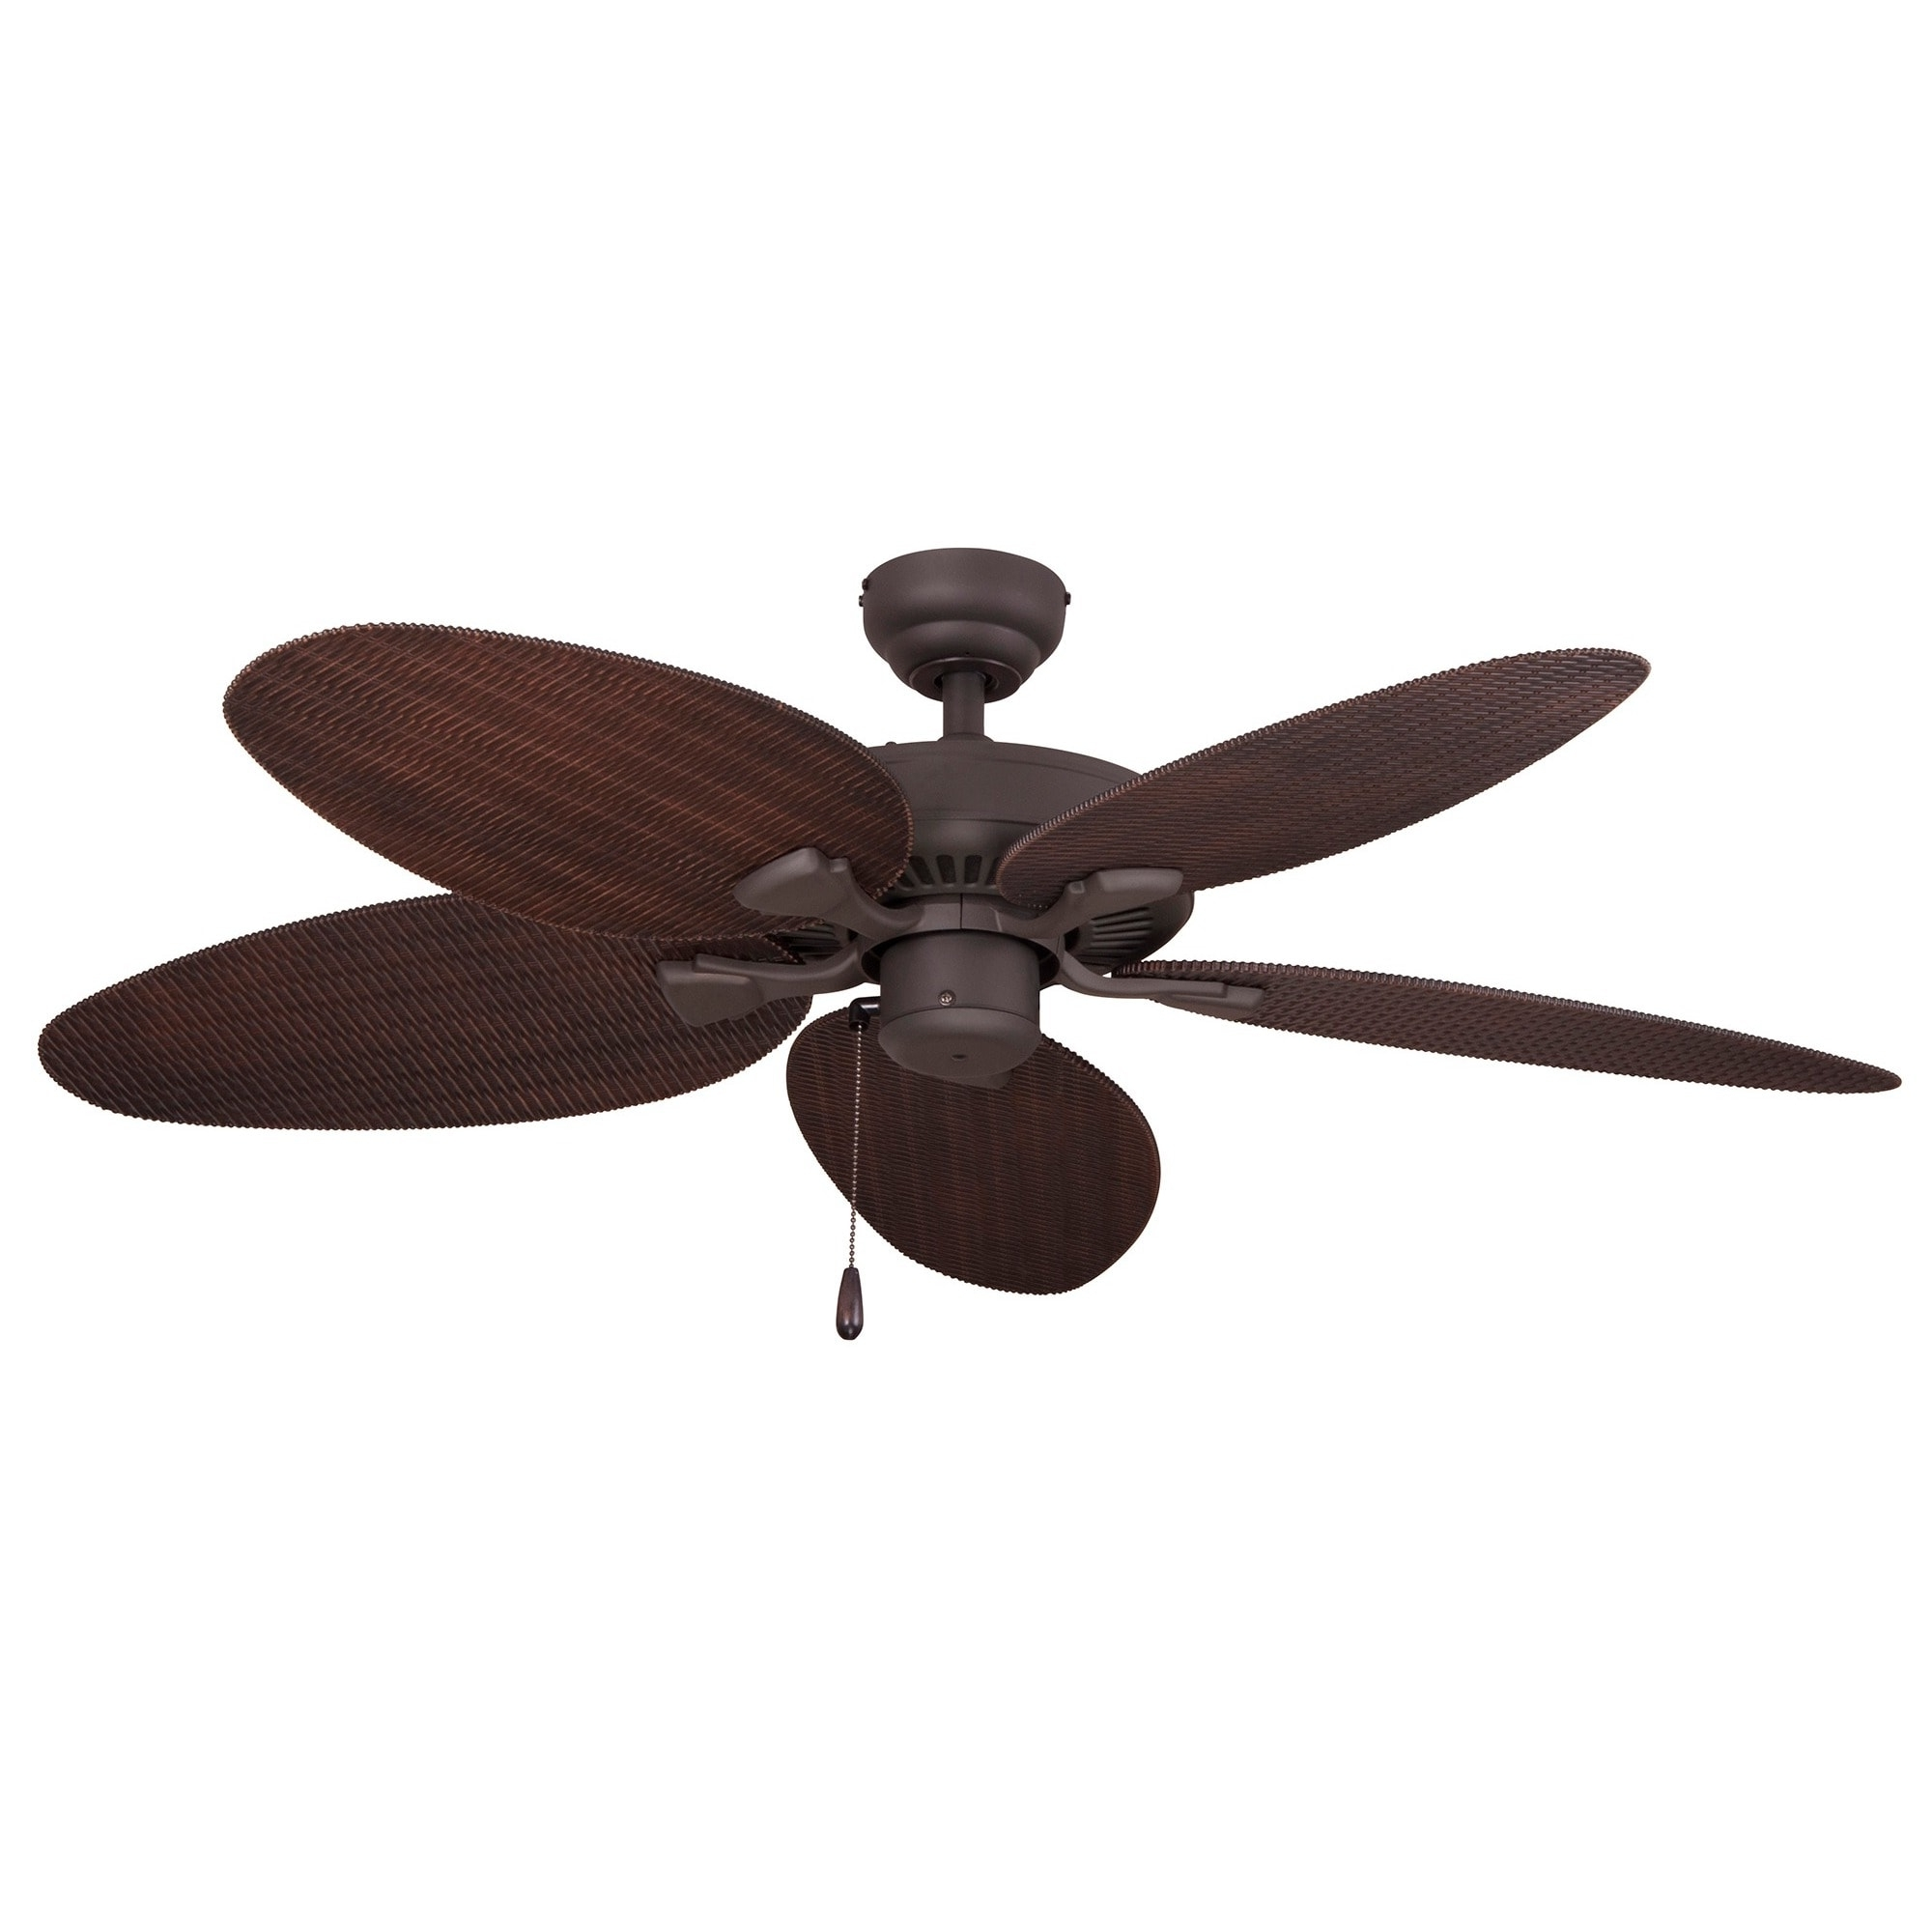 2019 Wicker Outdoor Ceiling Fans With Lights Regarding Ecosure Siesta Key 52 Inch Tropical Bronze Outdoor Ceiling Fan With (Gallery 19 of 20)